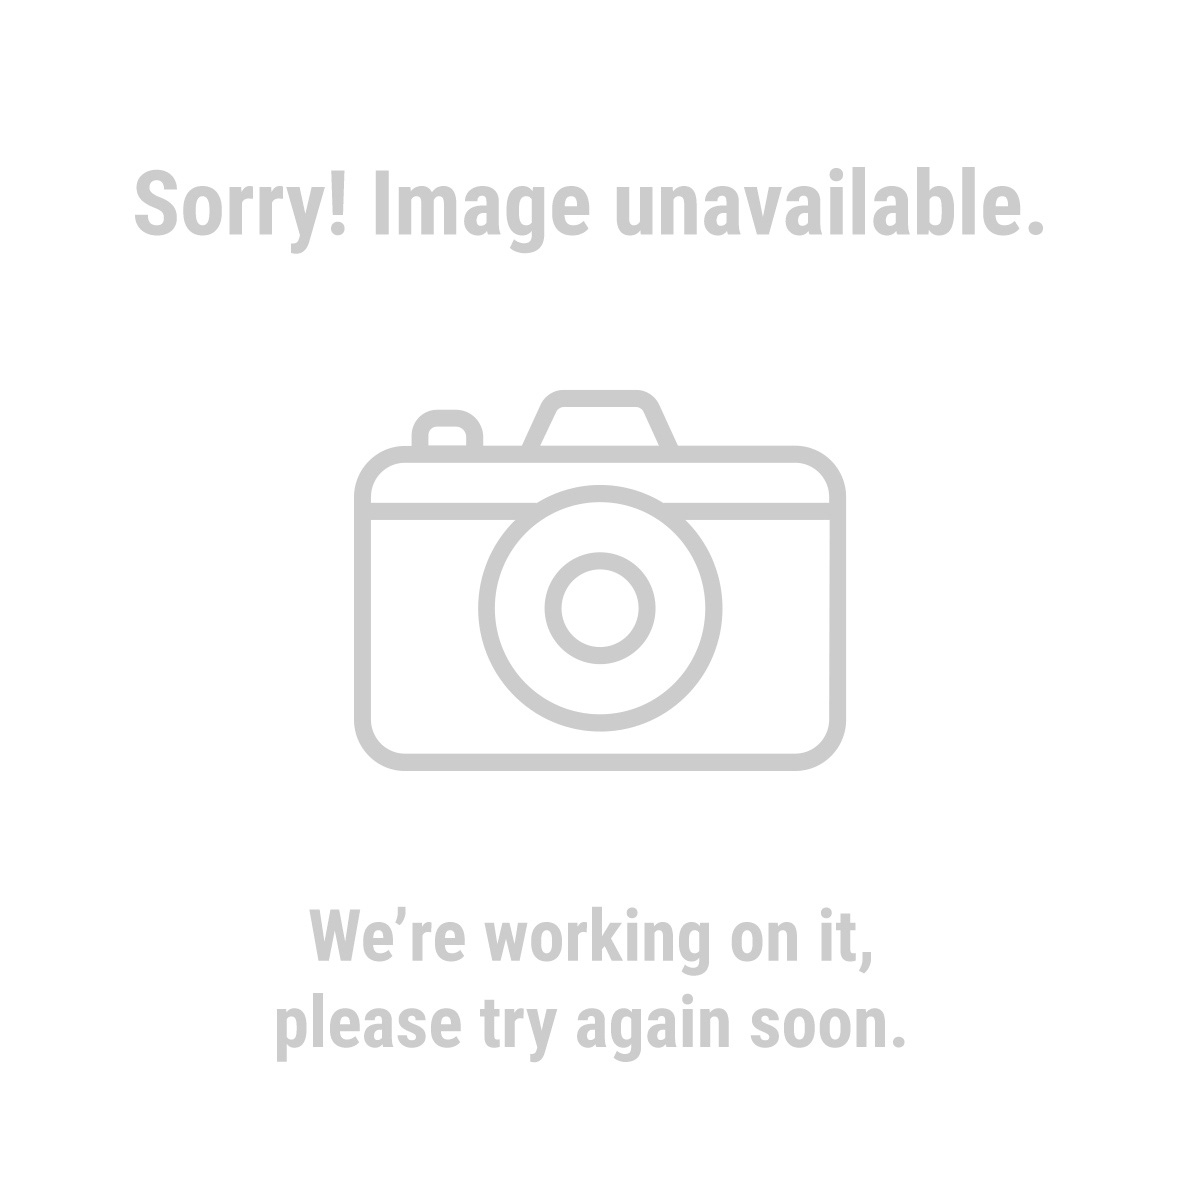 3/4 Horsepower Shallow Well Pump with Cast Iron Housing